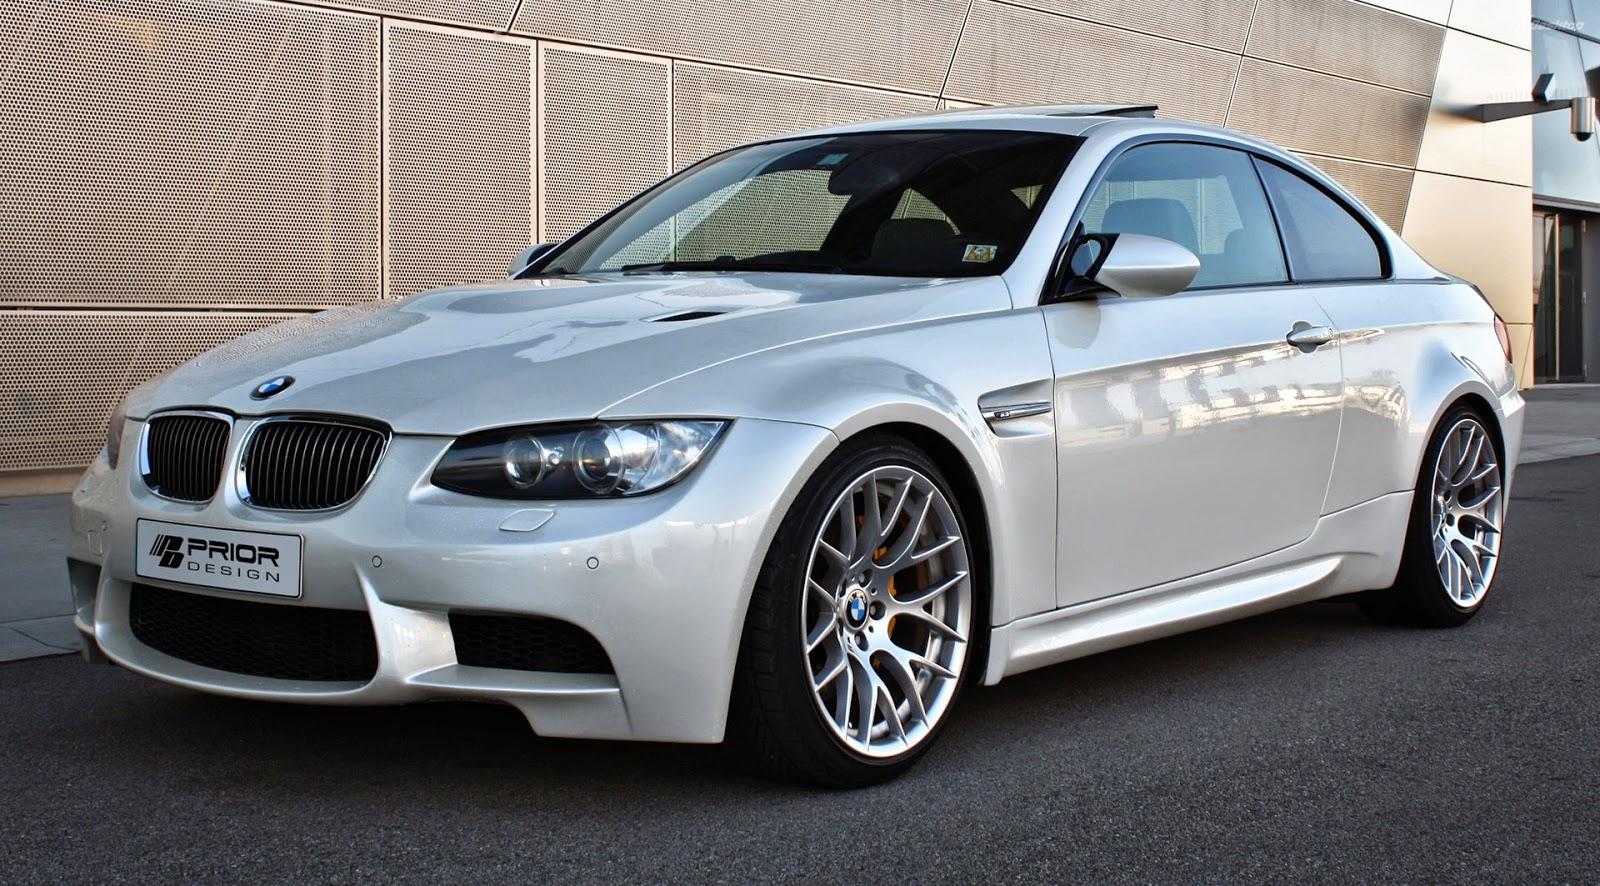 2014 bmw e92 m3 review specs price and reliability the. Black Bedroom Furniture Sets. Home Design Ideas